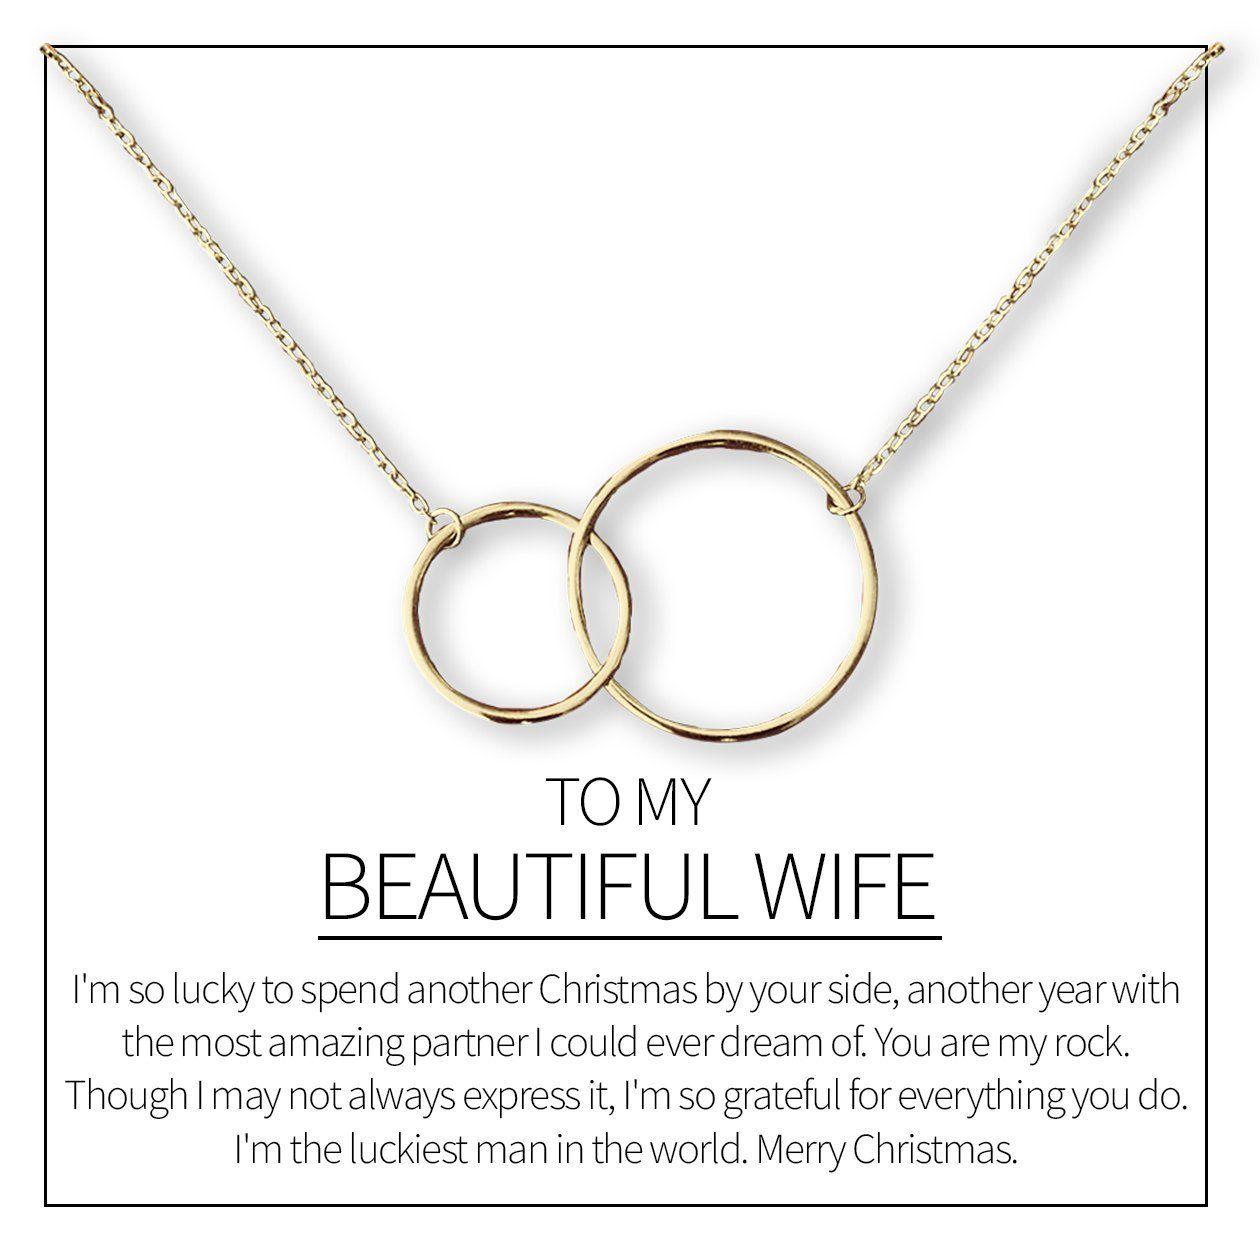 36+ Jewelry ideas for wife christmas viral